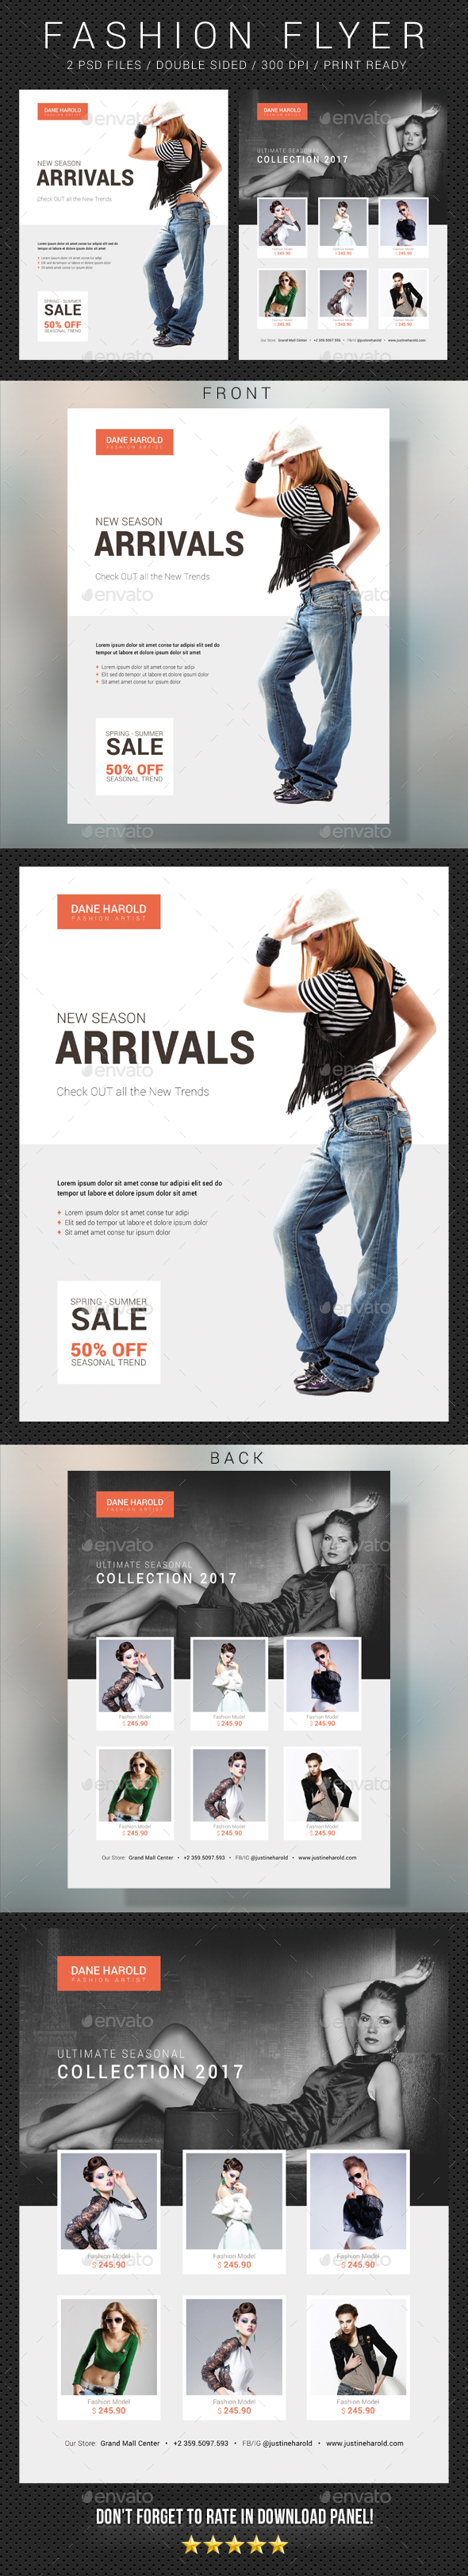 Fashion Flyer 09 - Commerce Flyers